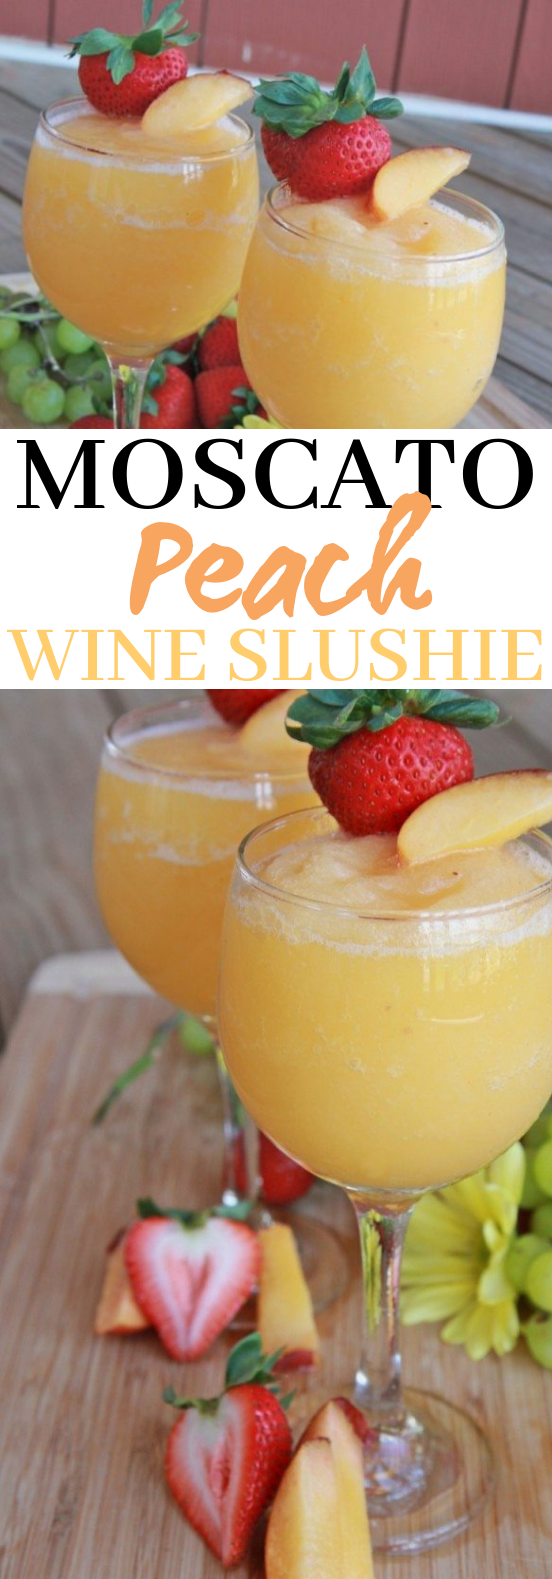 Moscato Peach Wine Slushies #drinks #wine